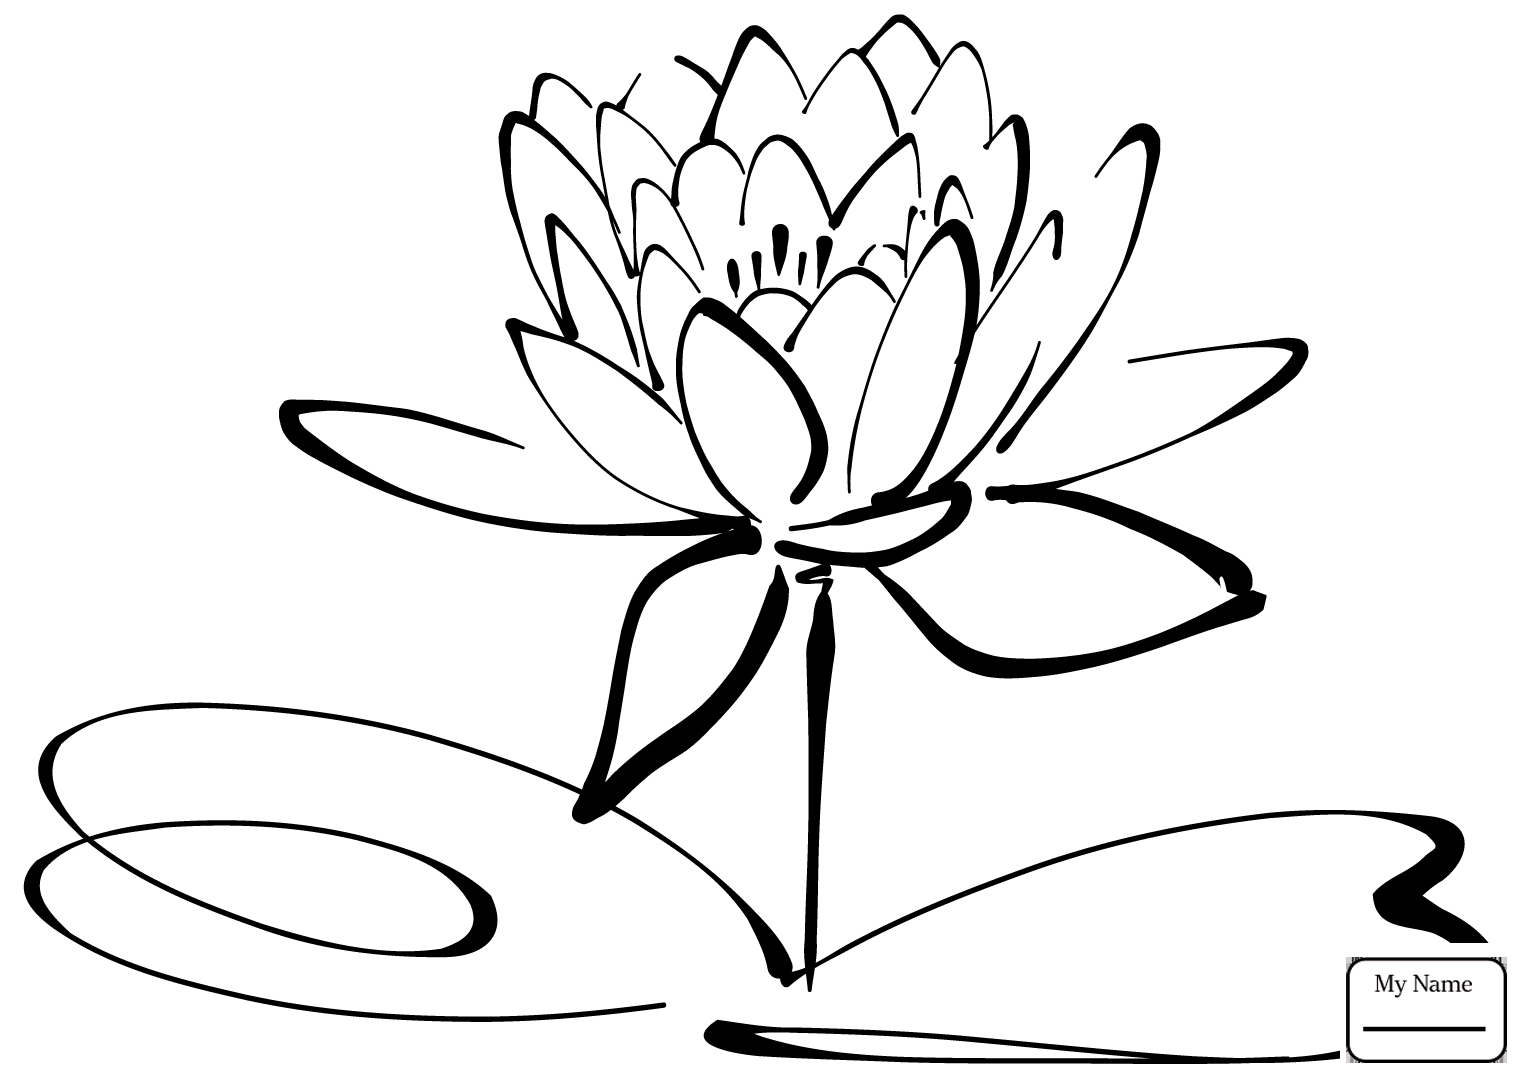 Waterlily Drawing At Getdrawings